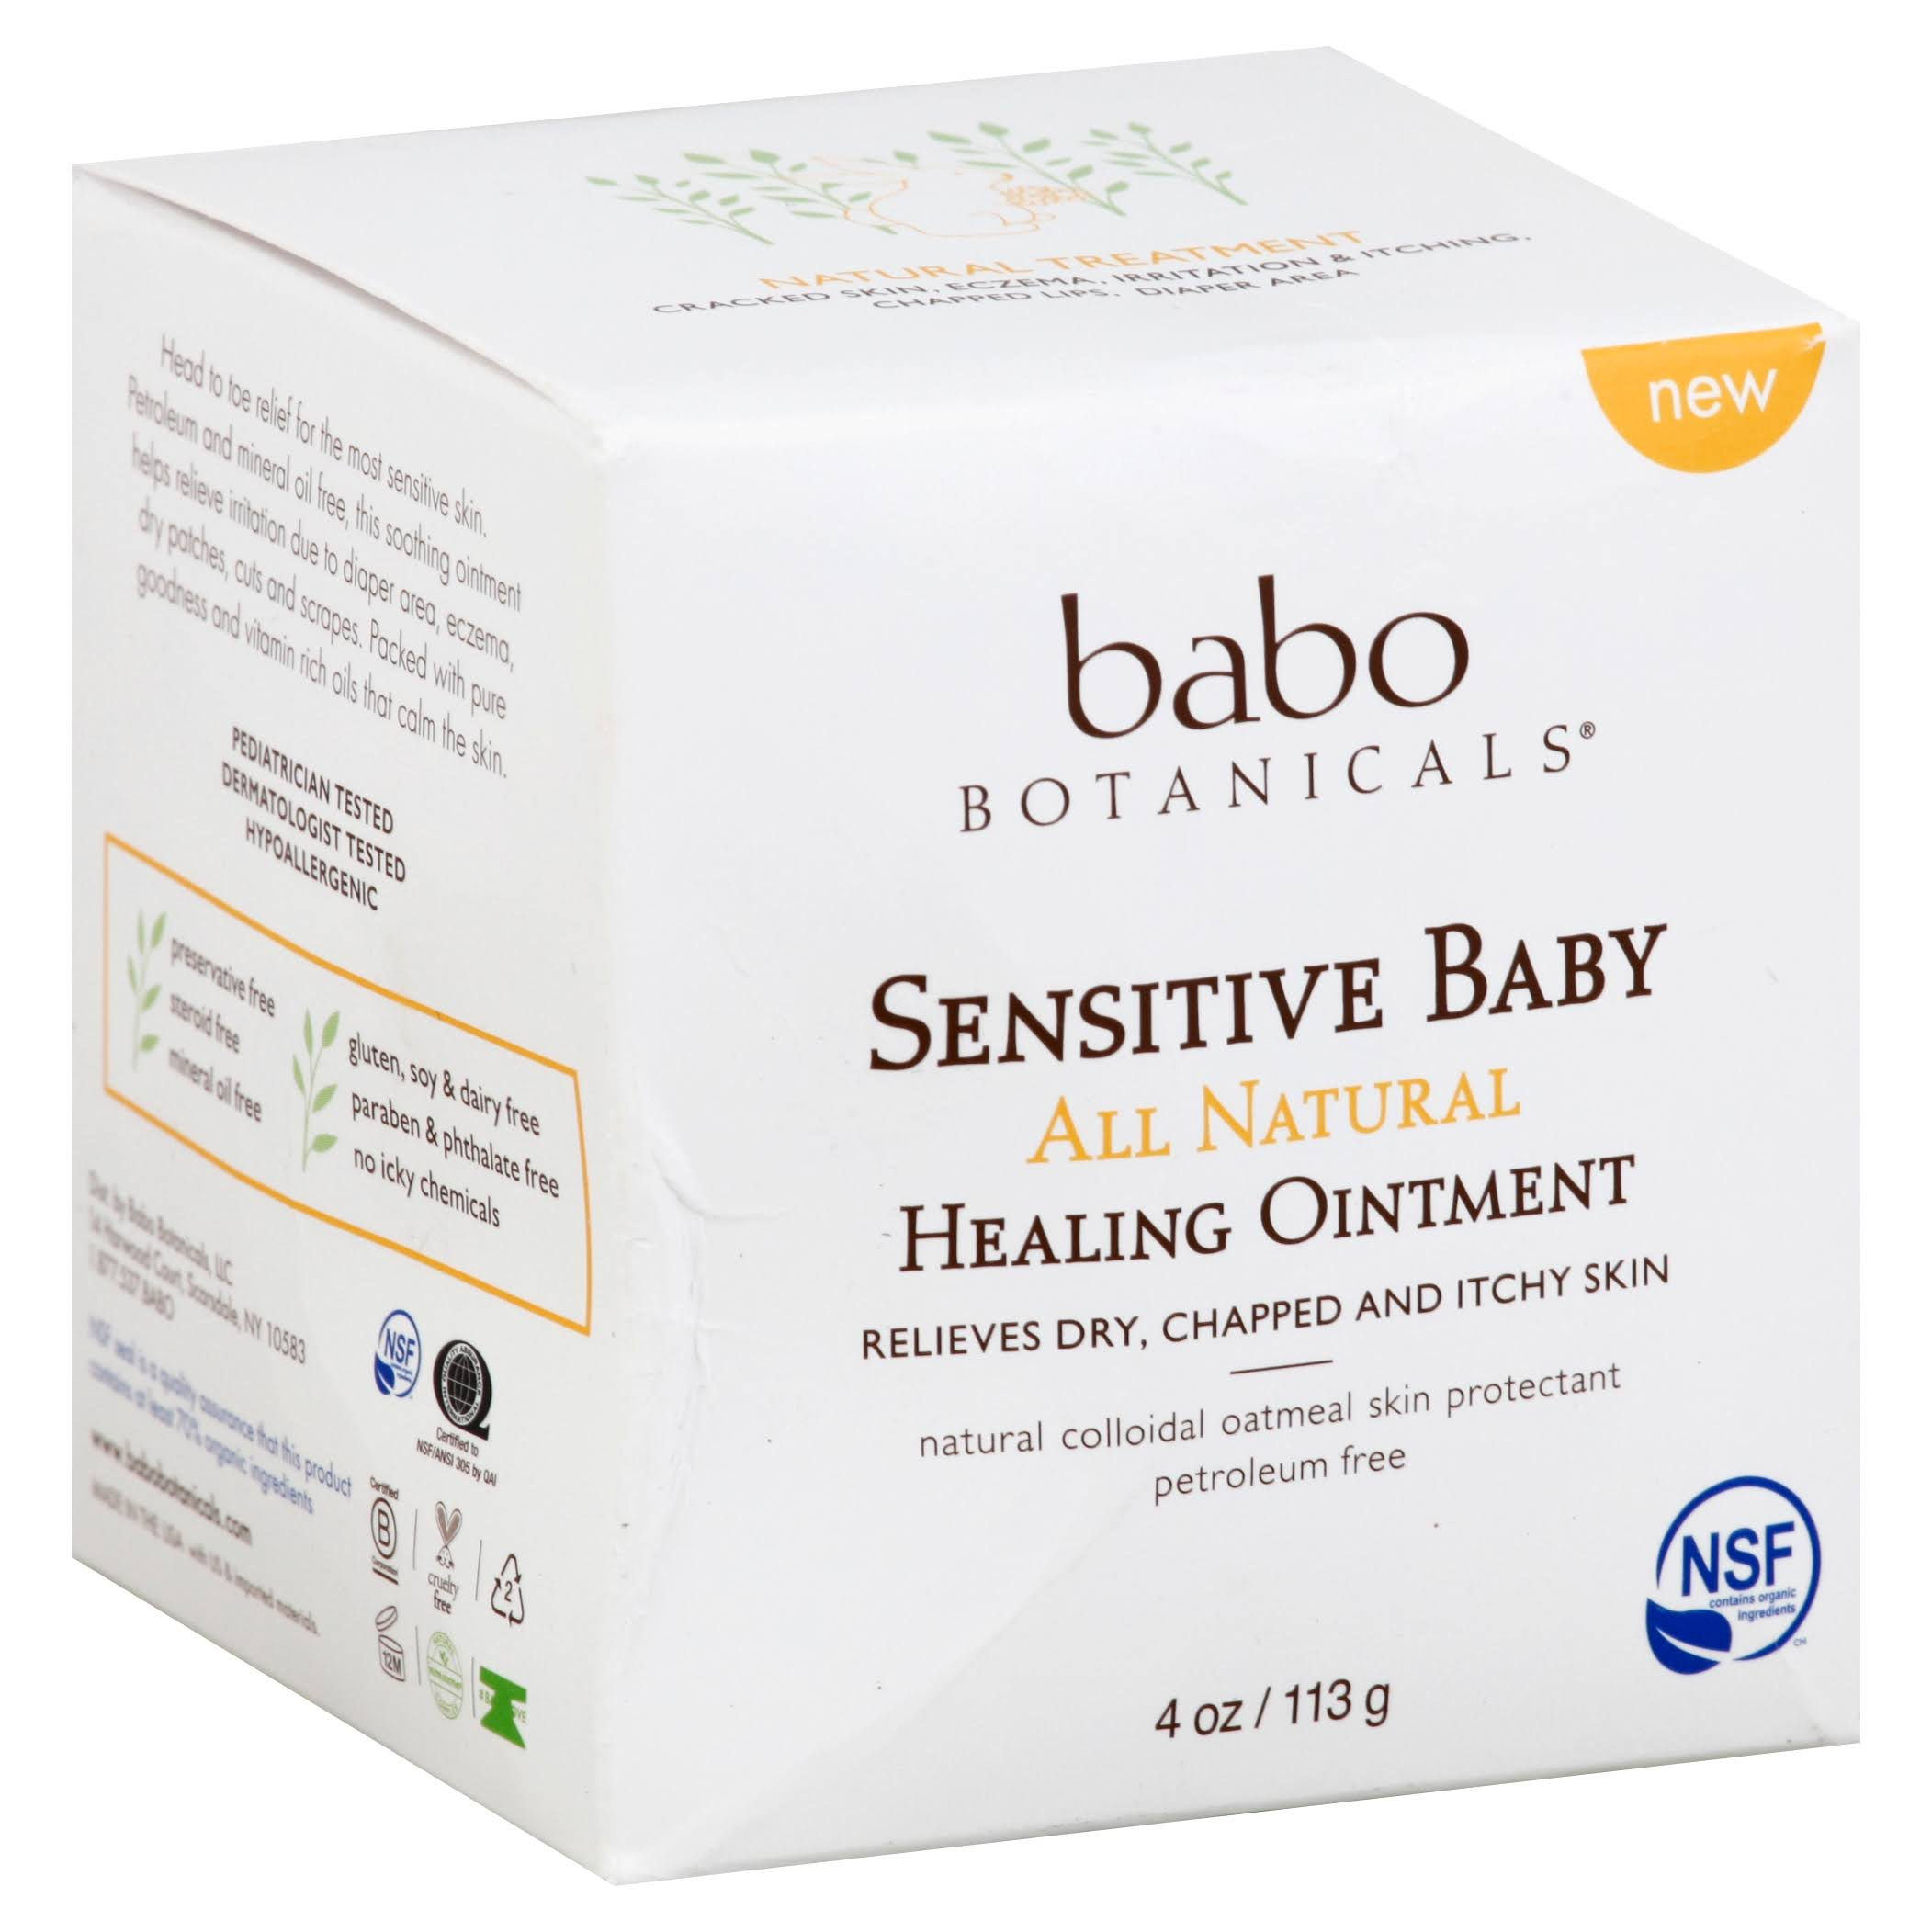 Babo Botanicals Sensitive Baby All Natural Healing Ointment - 4oz